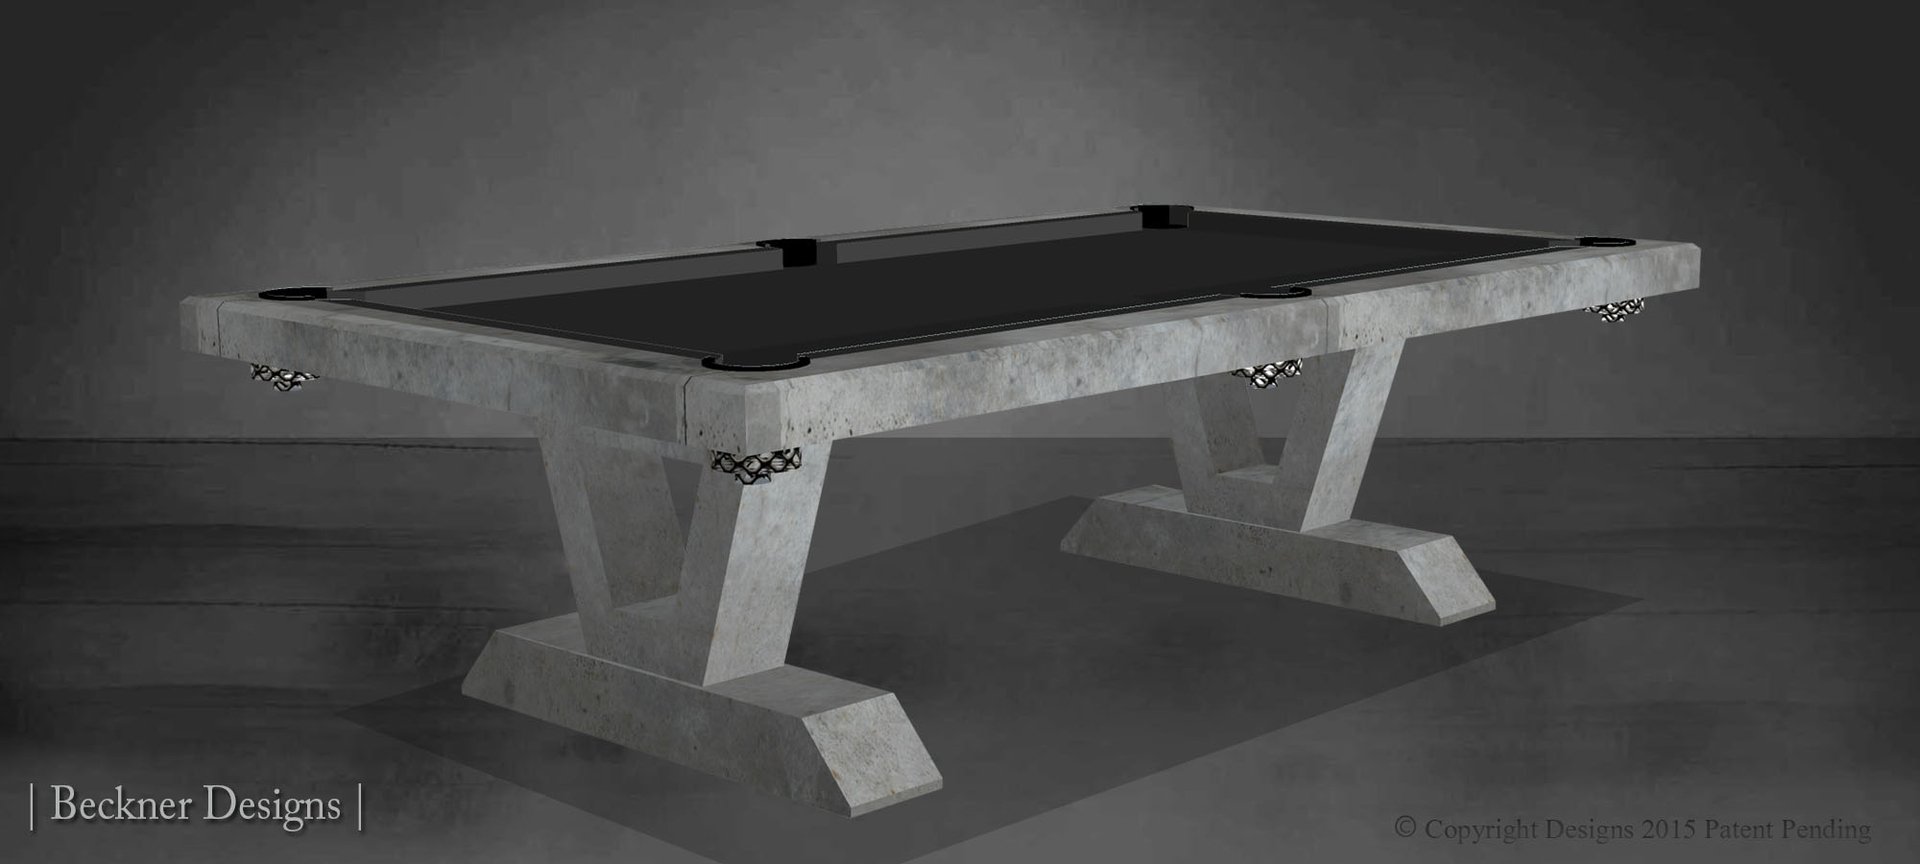 Beckner Designs Modern Pool Tables Custom Pool Tables - Modern pool table designs